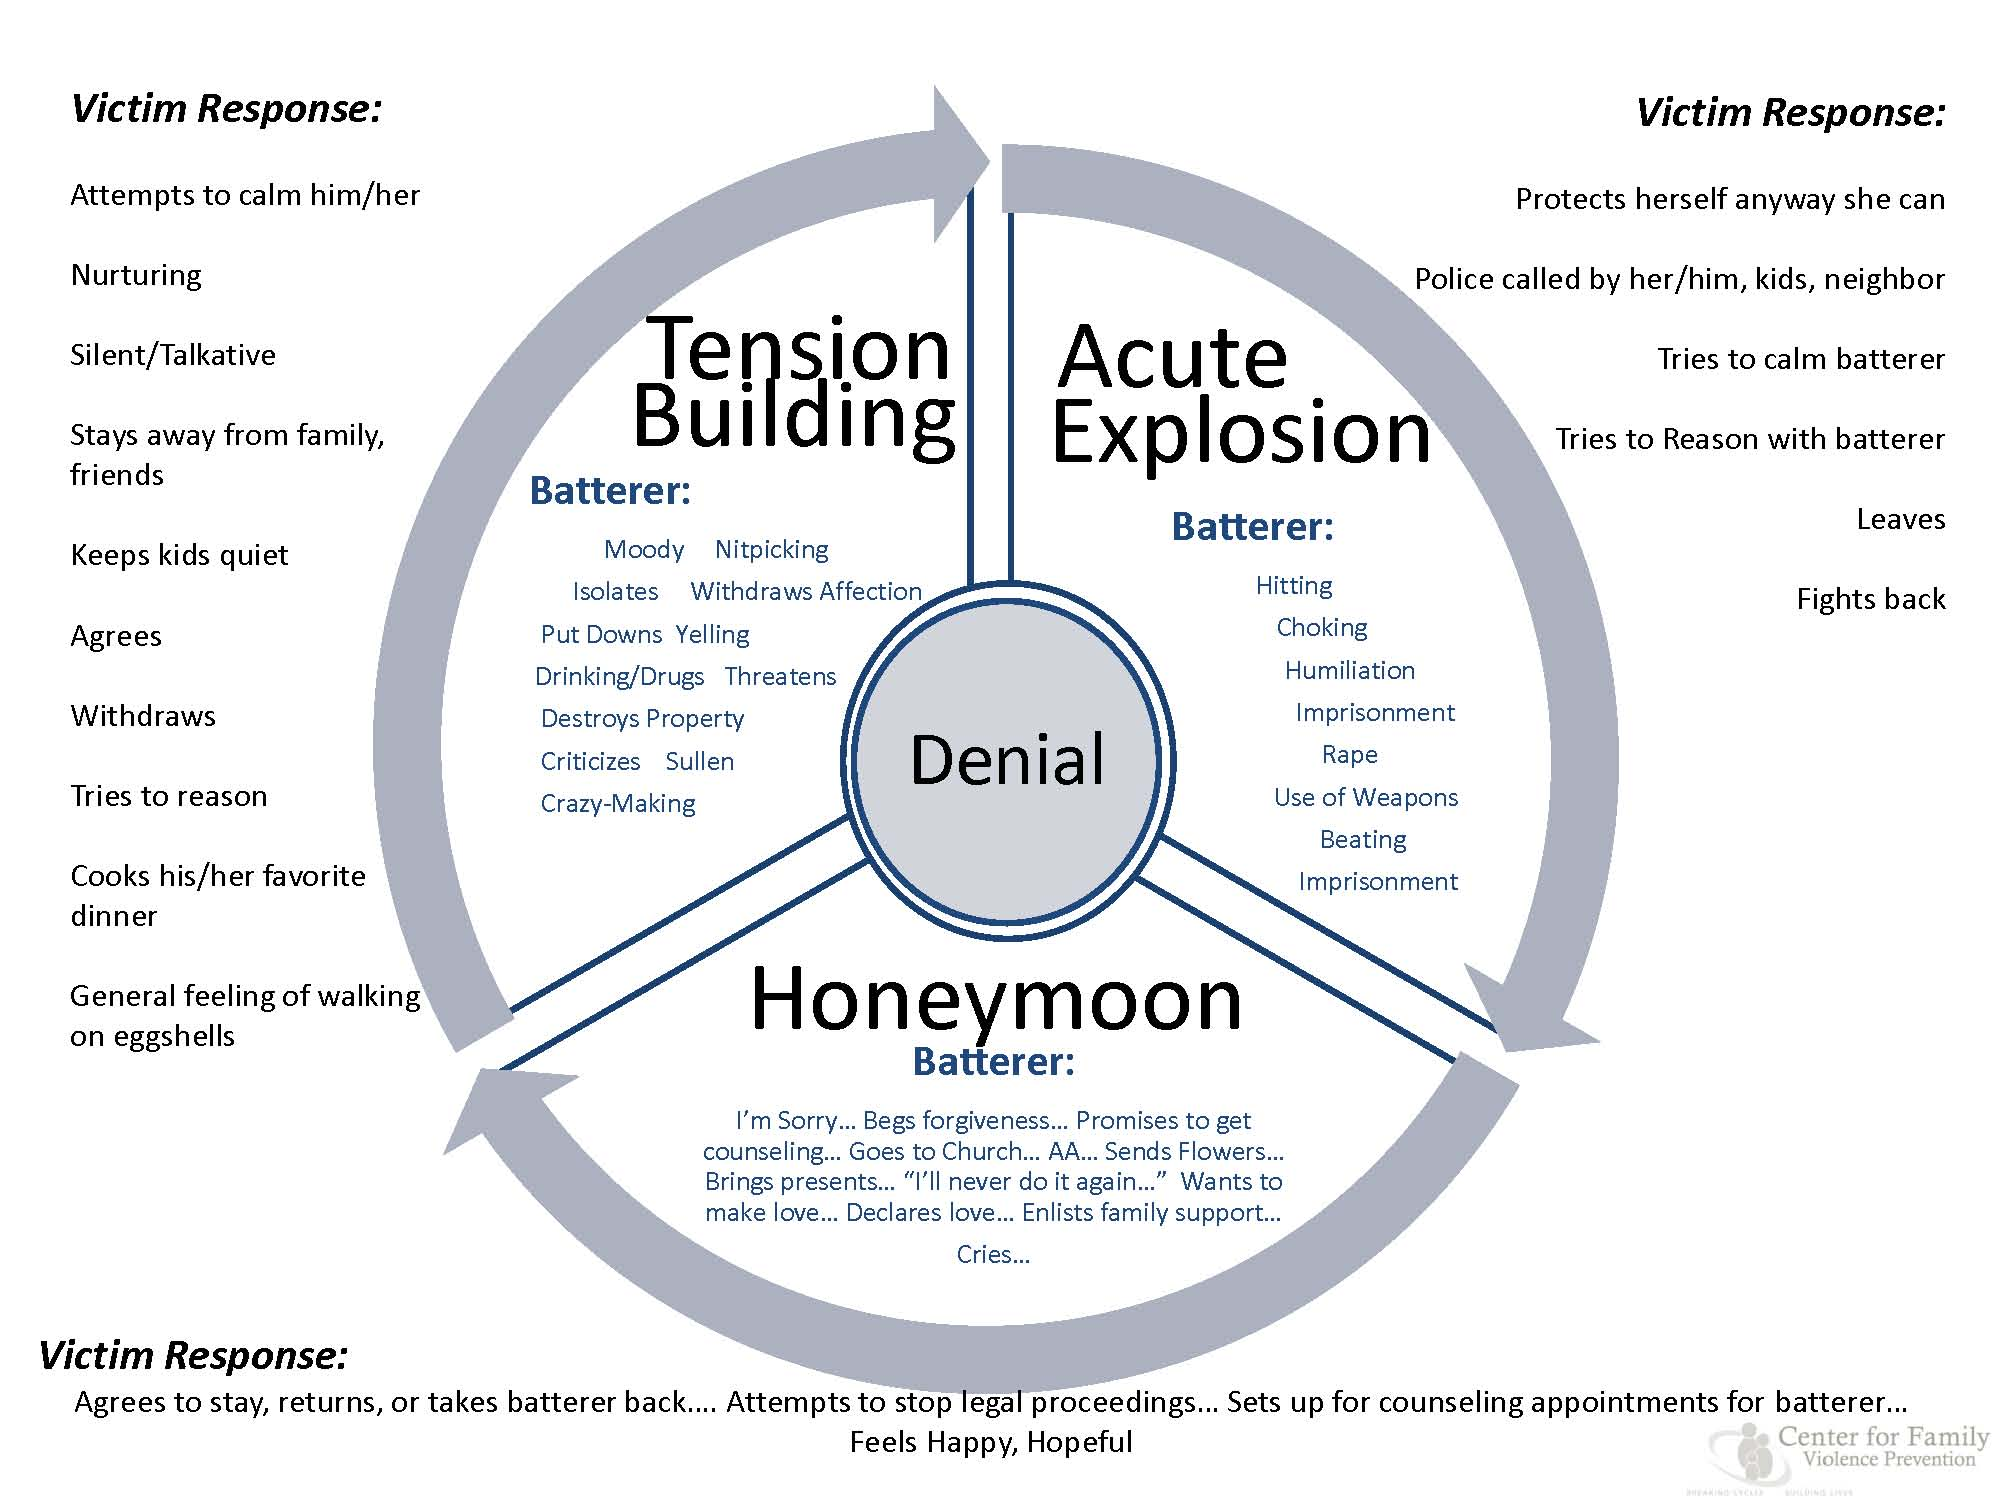 emotional cycle of abuse diagram trimming horse hooves nmom told ndad to rape me wtf parents are asking